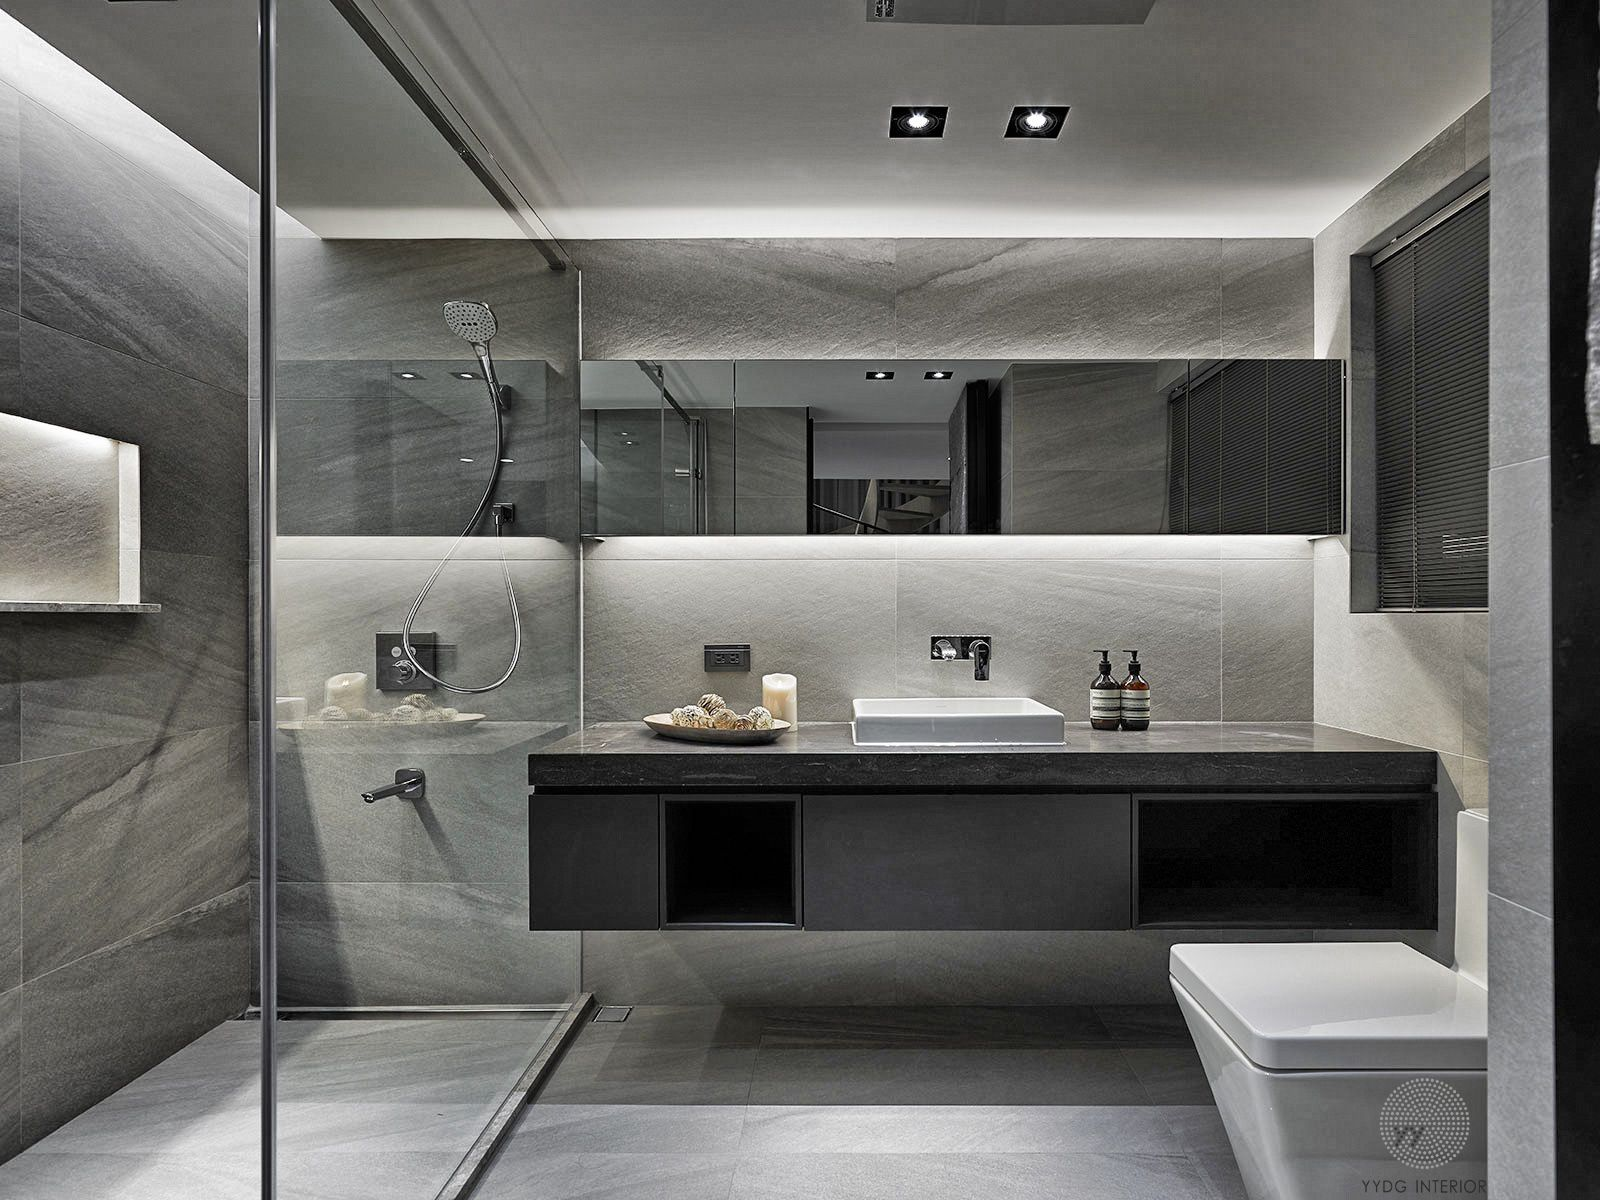 Design Bagno Moderno : Modern linear design bathroom. interior ideas. interiors. idea